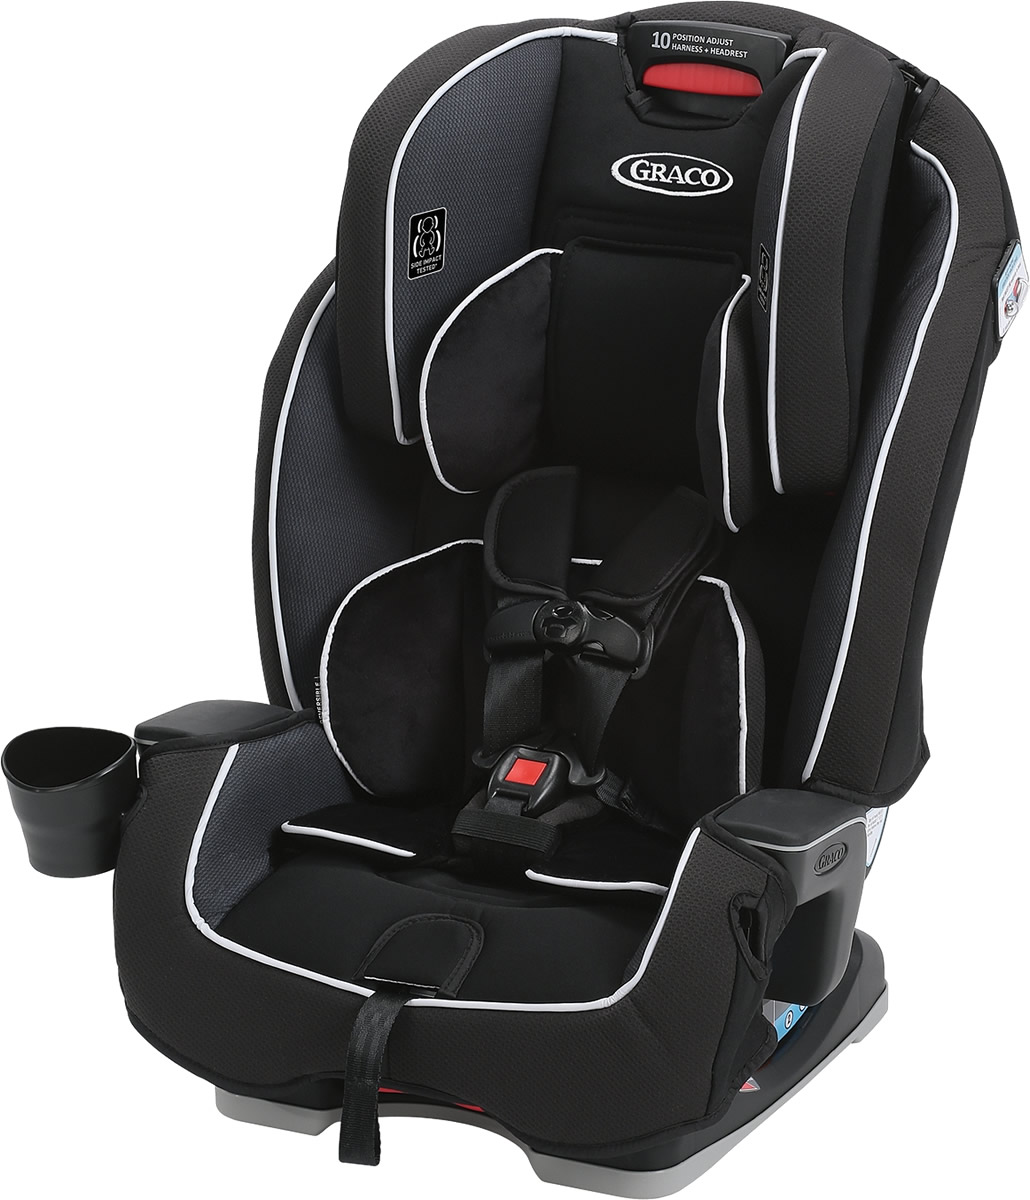 All In One Convertible Car Seats ITEM 1946246